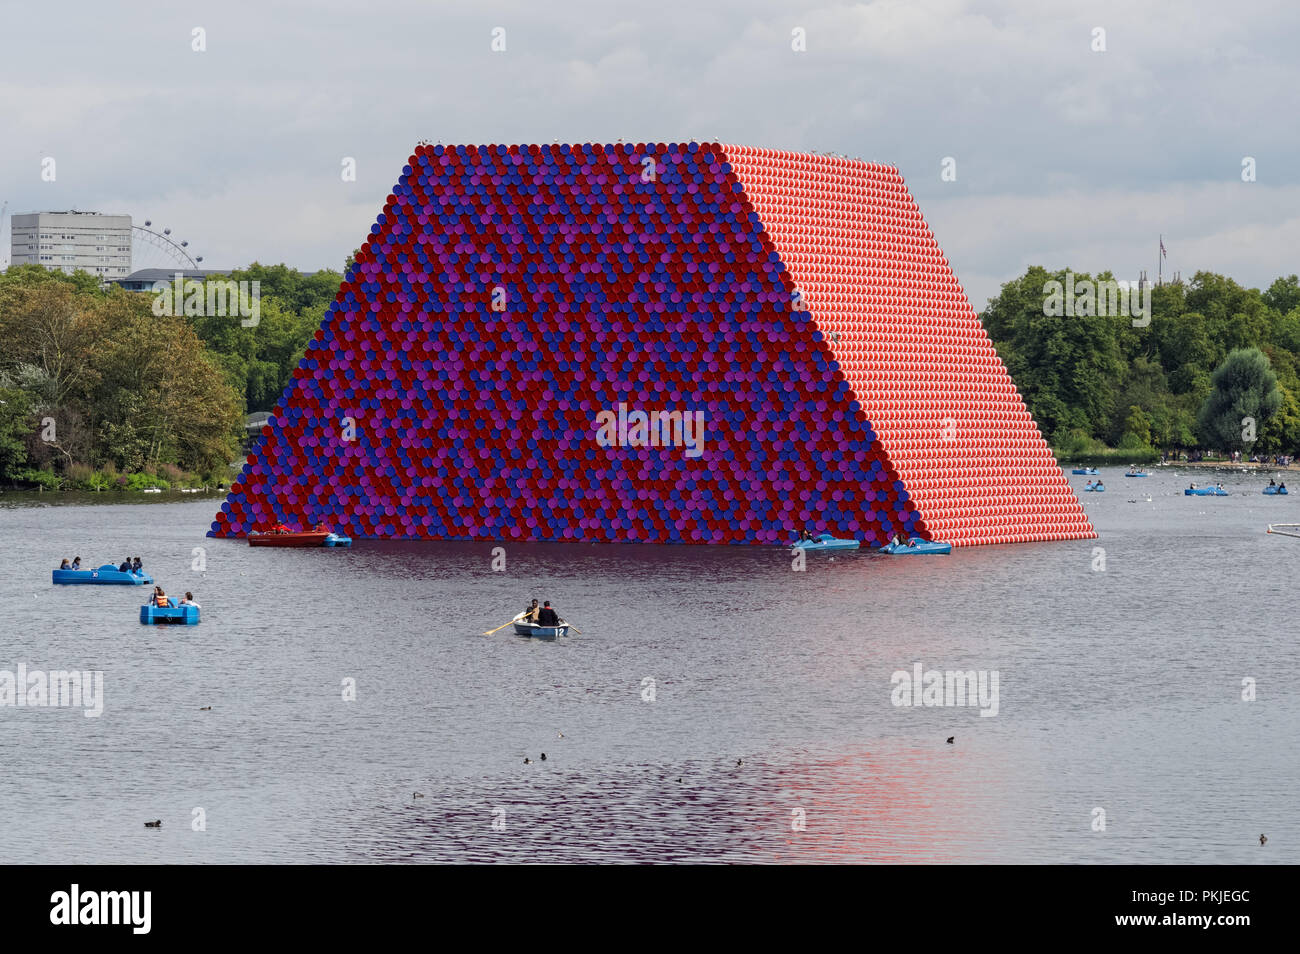 The London Mastaba, floating art installation by the artist Christo, on the Serpentine lake in Hyde Park in 2018, London England United Kingdom UK - Stock Image